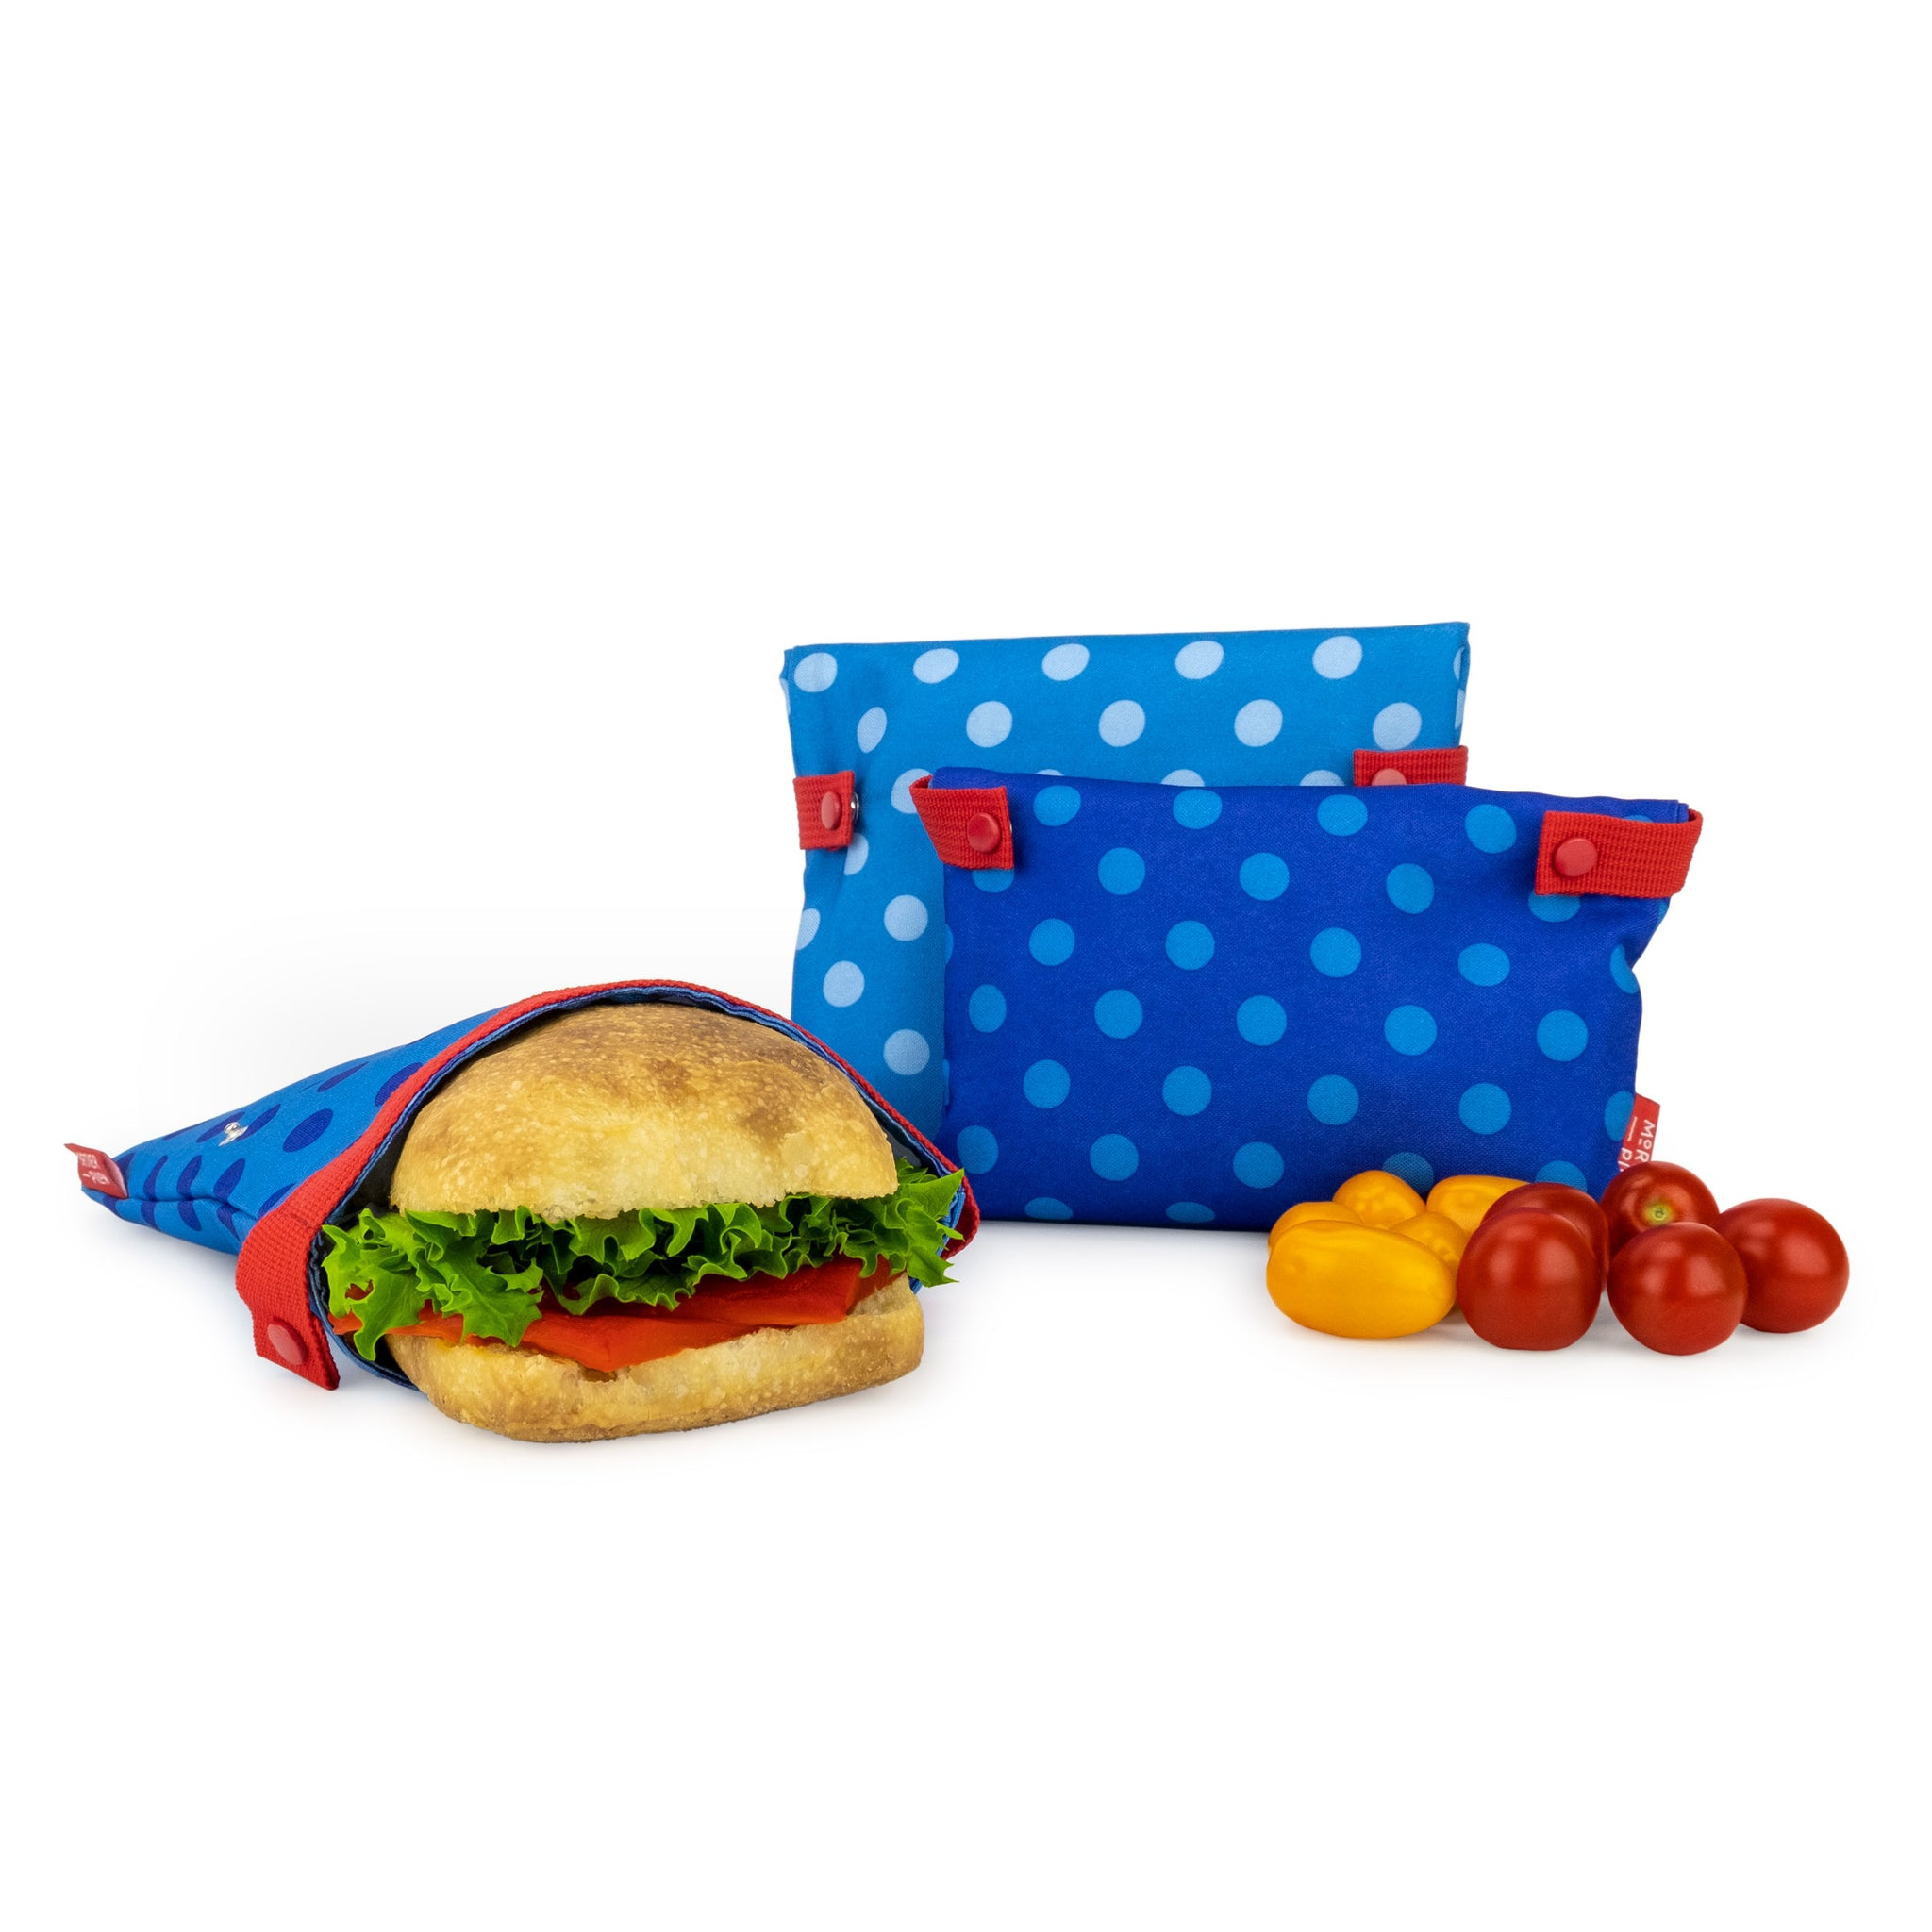 3 Reusable Lunch Bags for your Snacks